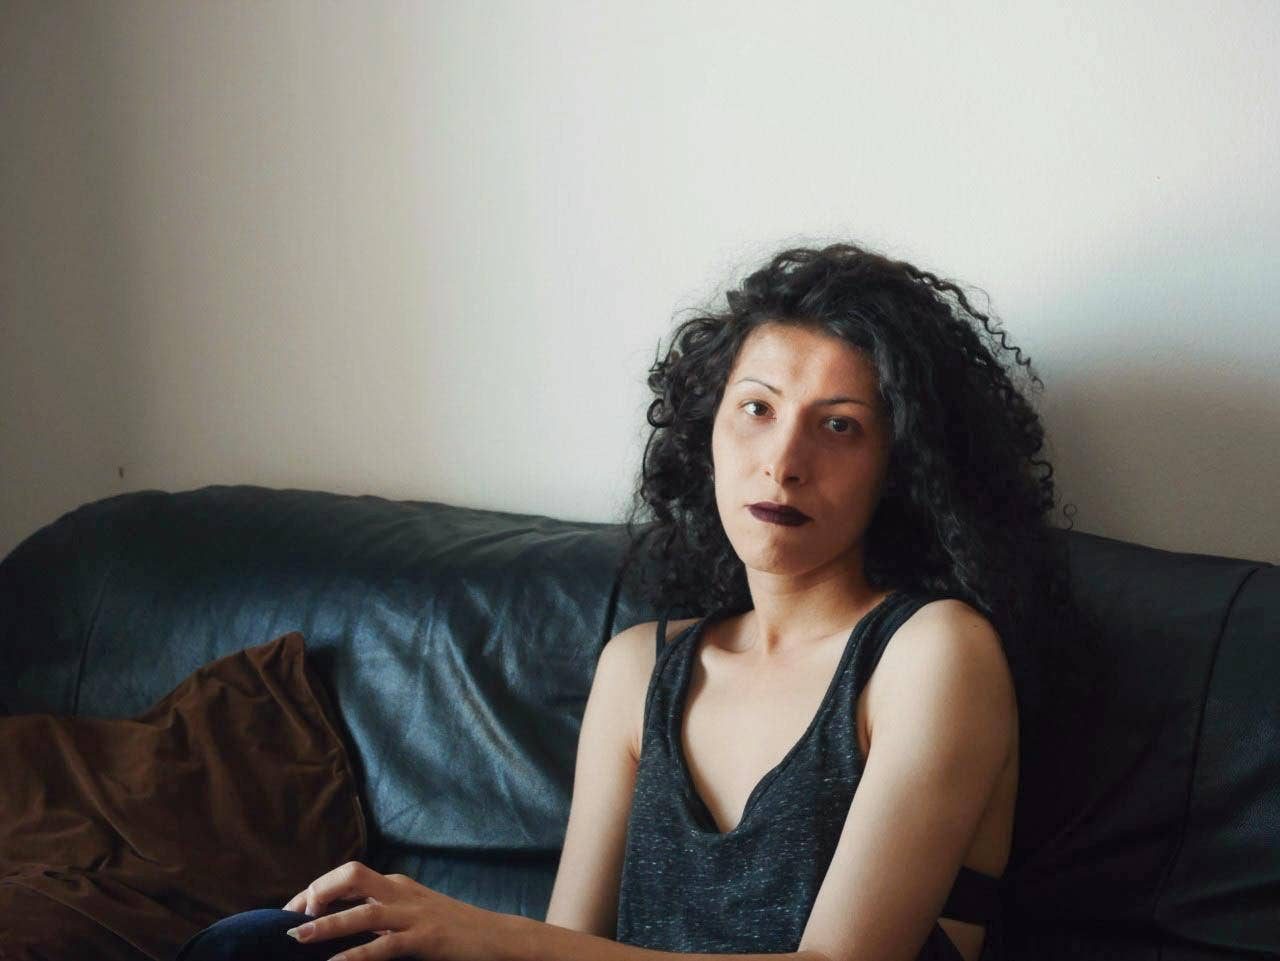 i'm an arab trans woman and a canadian immigrant – but i don't